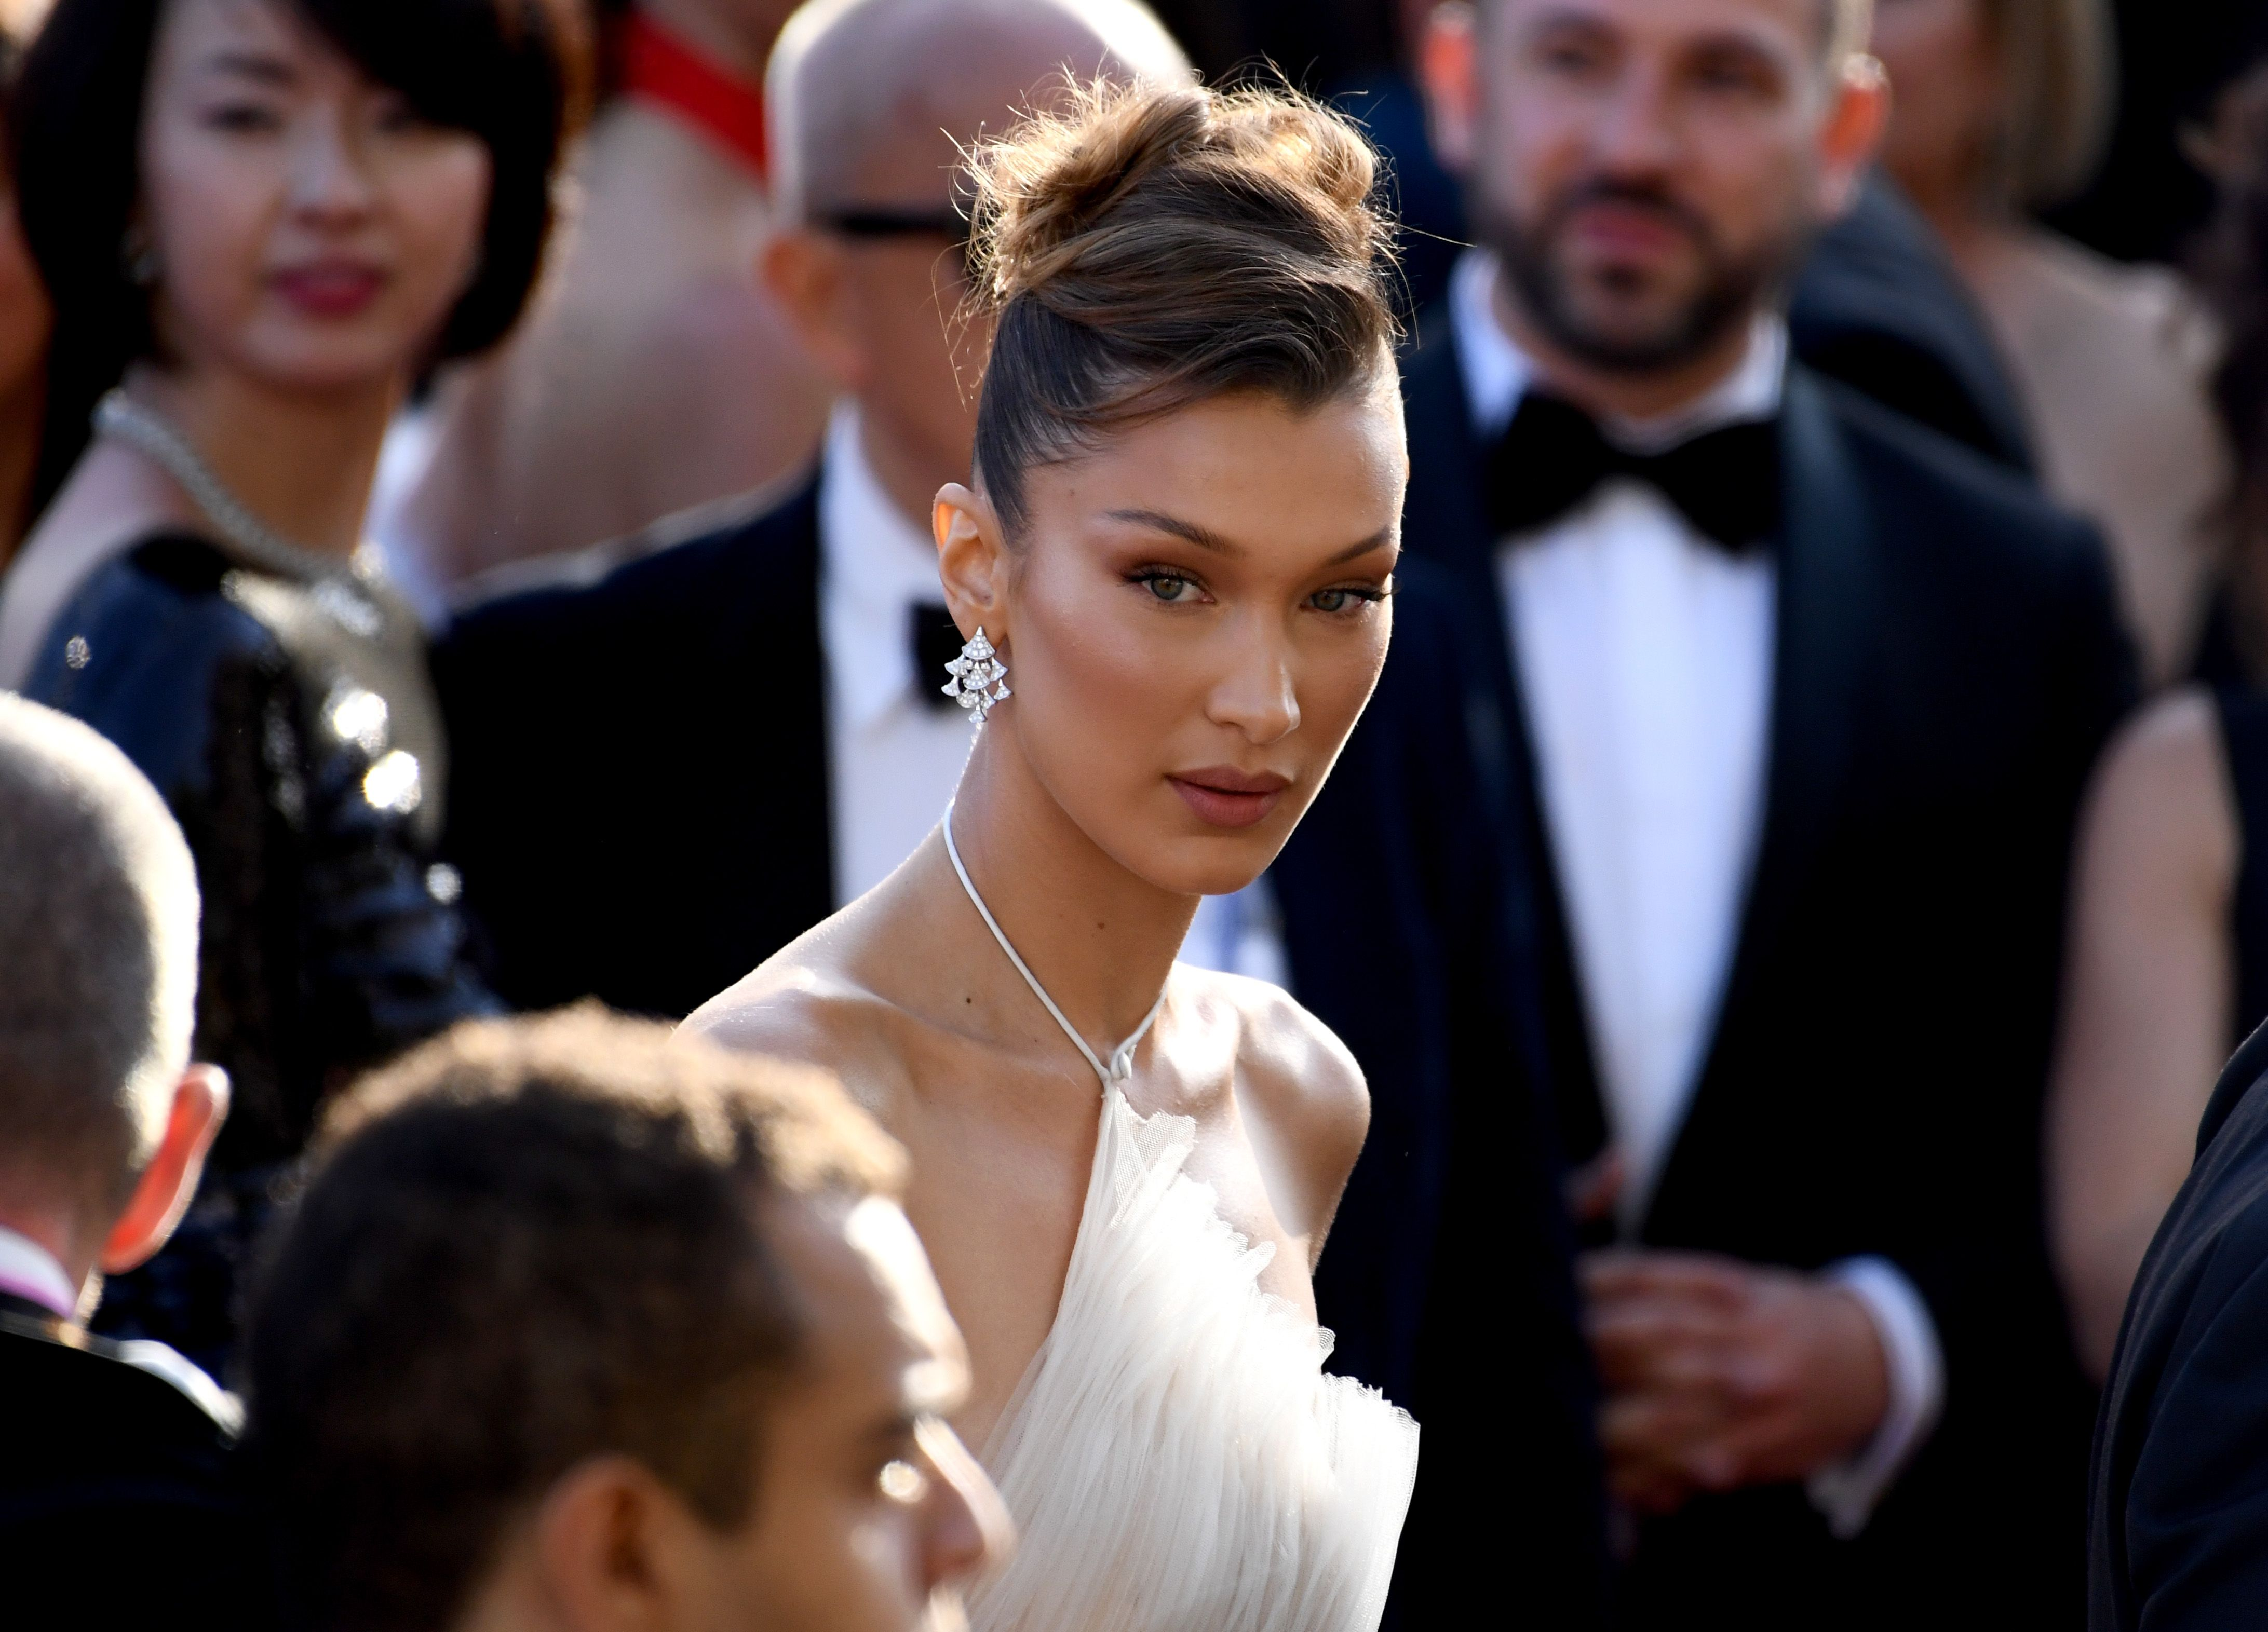 Bella Hadid Looks Angelic in a White Tiered Gown at the Cannes Film Festival 'Rocketman' Premiere